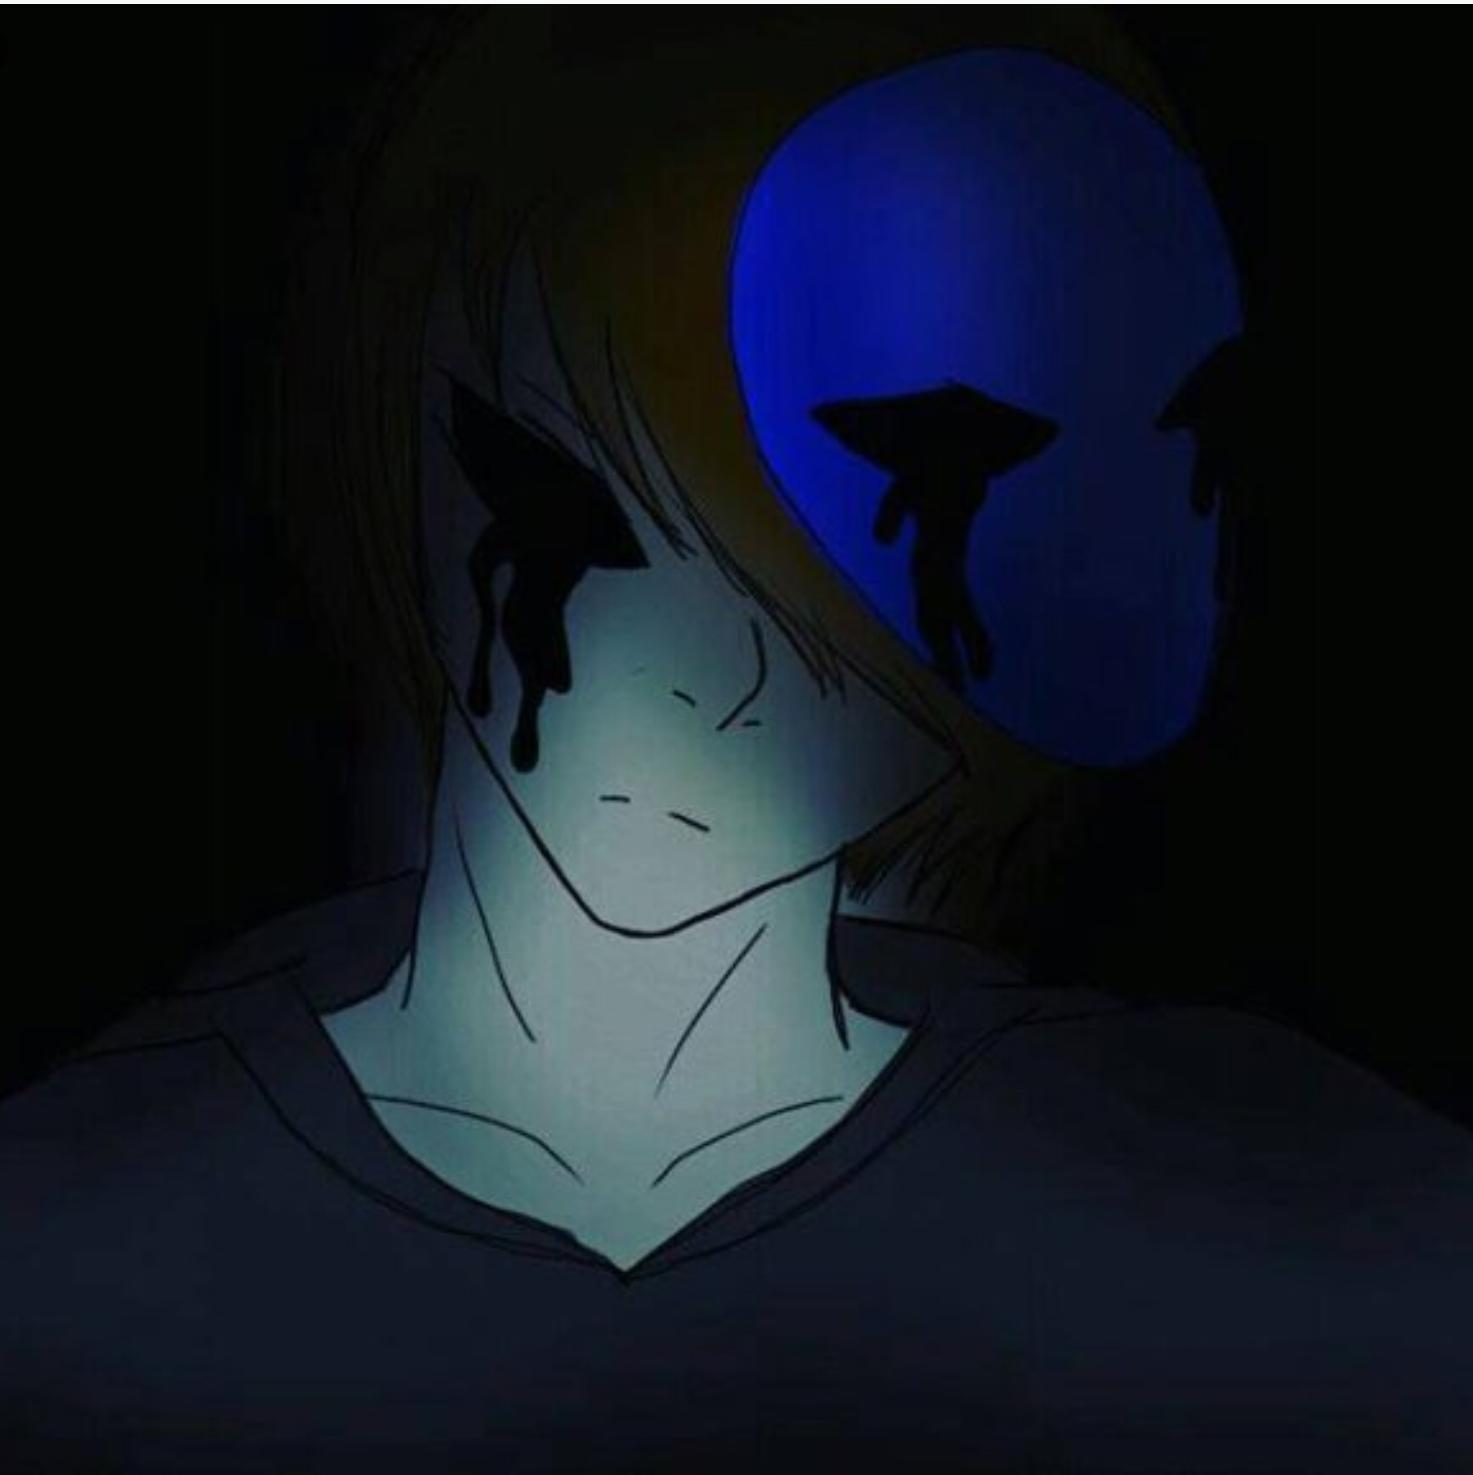 Alright it's your turn e,j, Eyeless jack: why do you sound so unhappy.. Because I HATE YOU!! NOW JUST SAY A QUE- Eyeless jack:*puts tape over her mouth* favorite food?